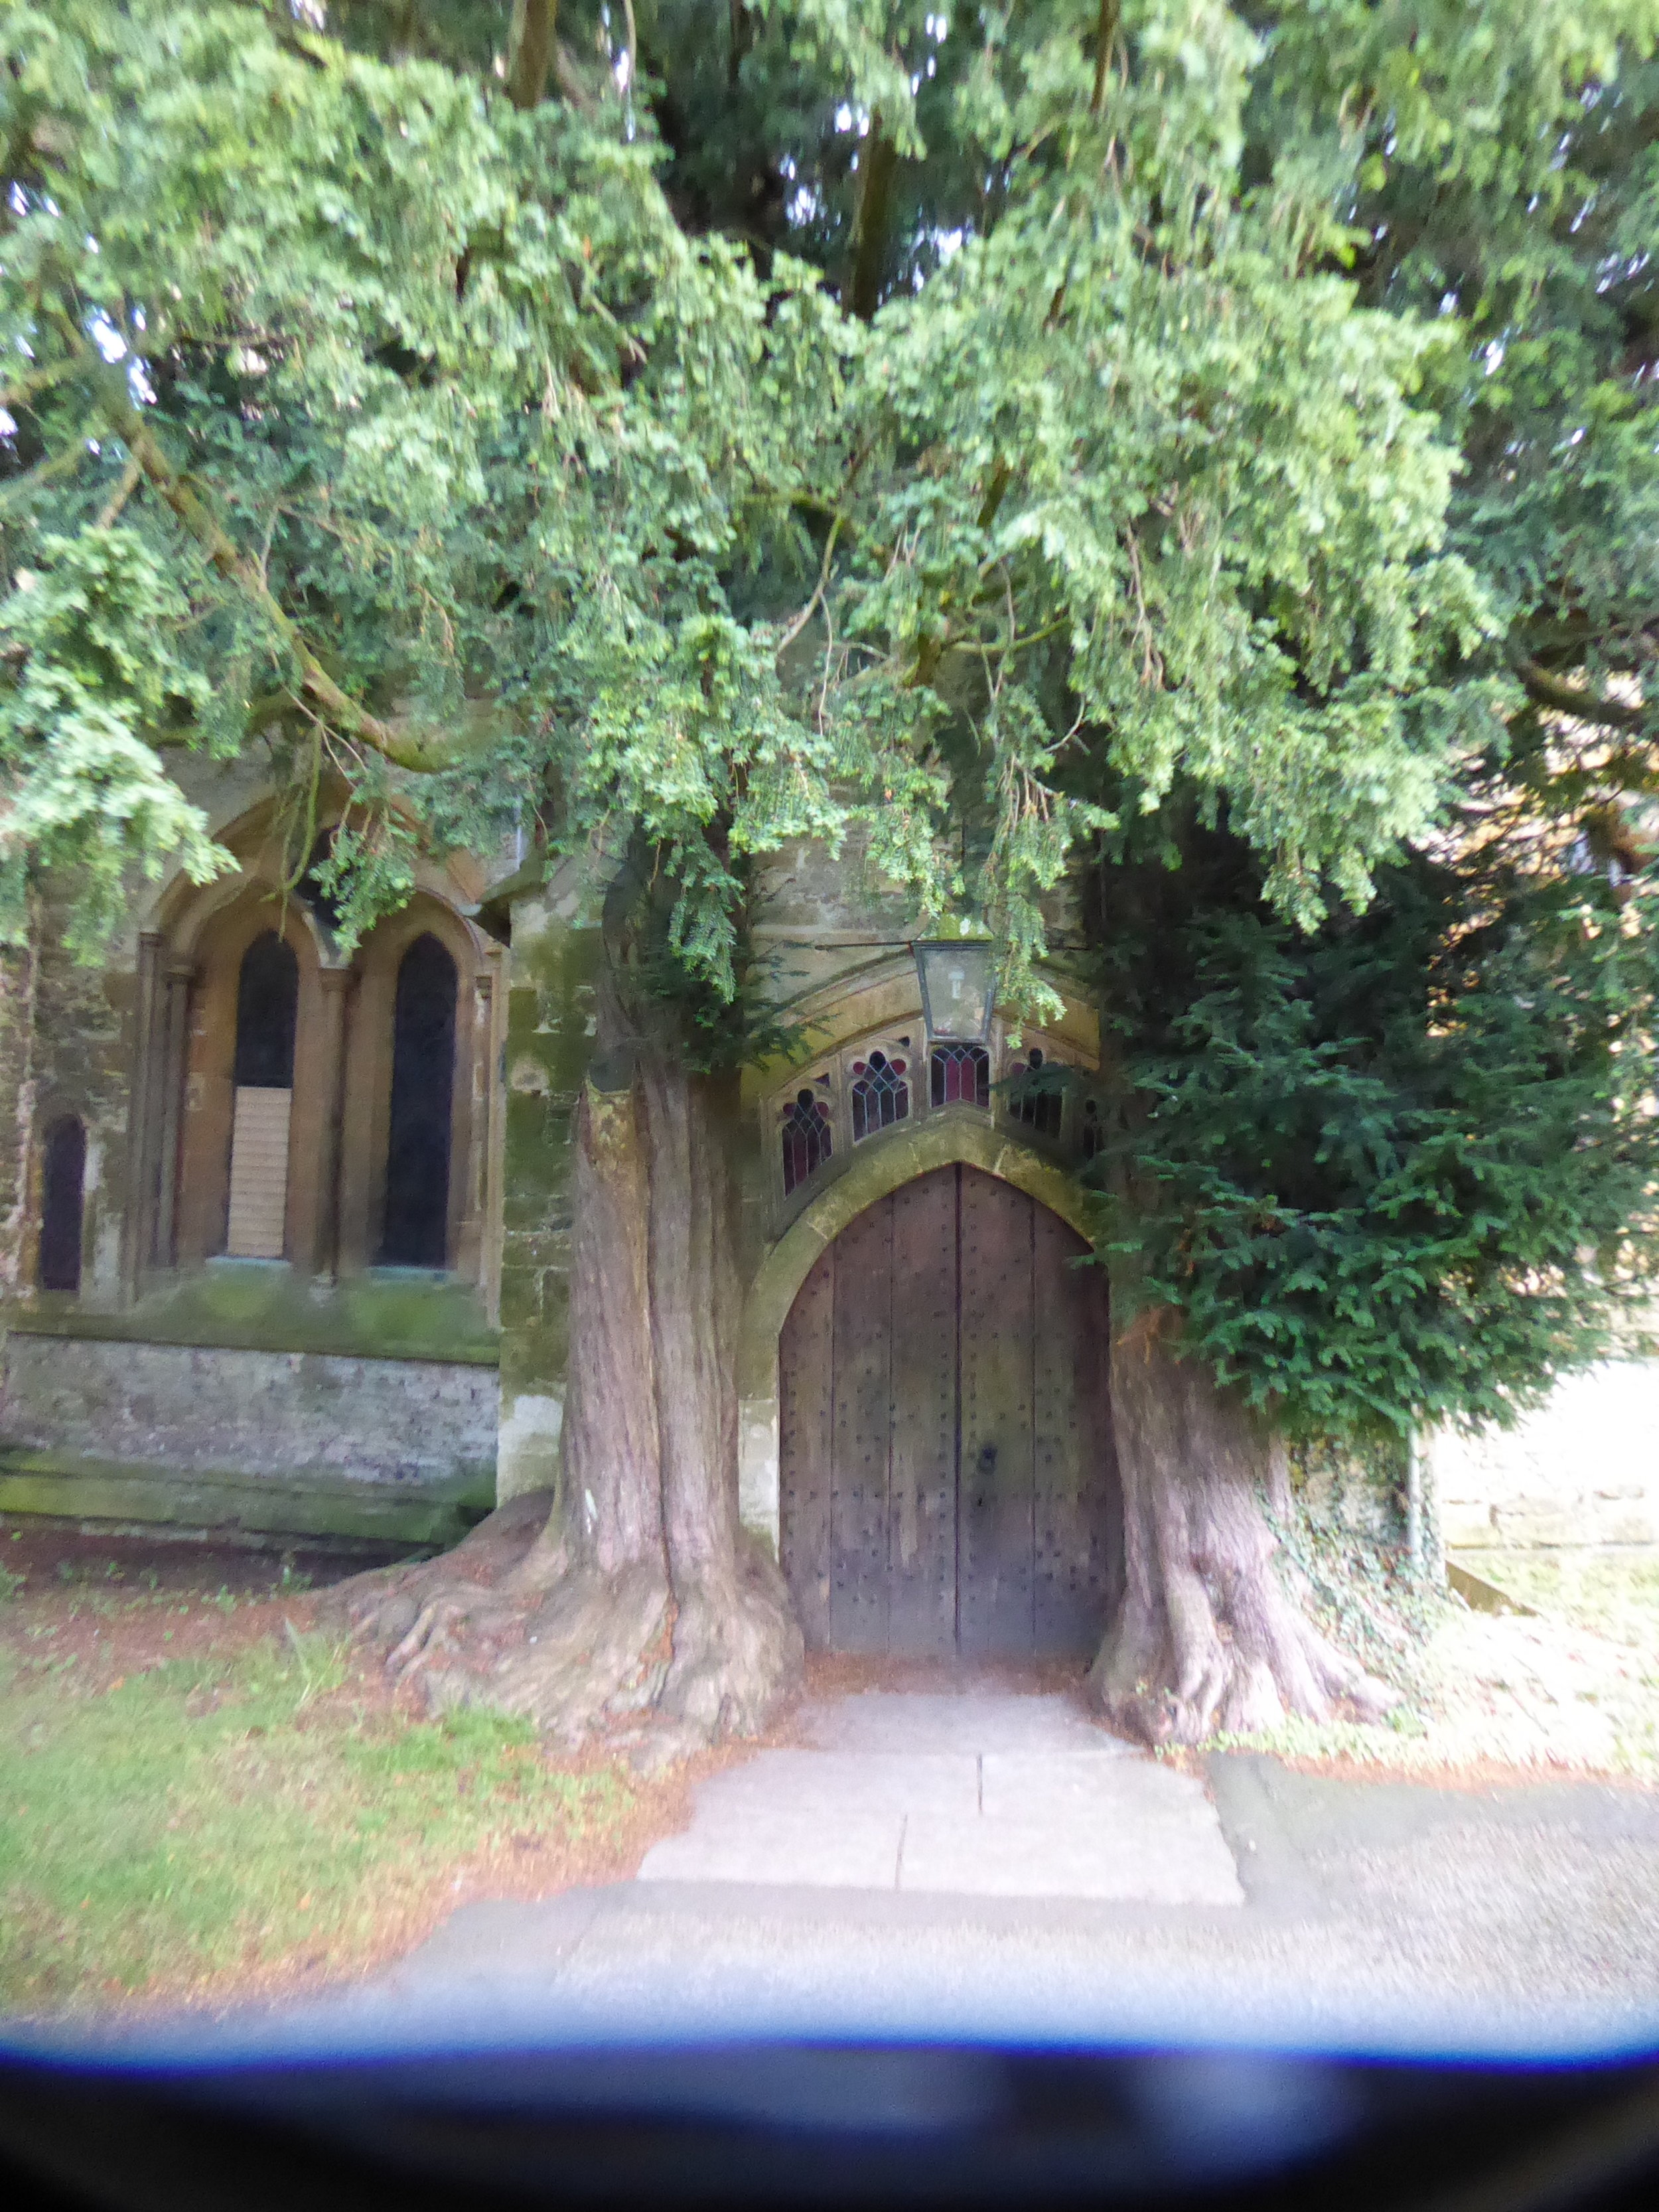 Ancient and marvelous Yew trees, like these, that were supposedly an inspiration for J.R.R. Tolkien.